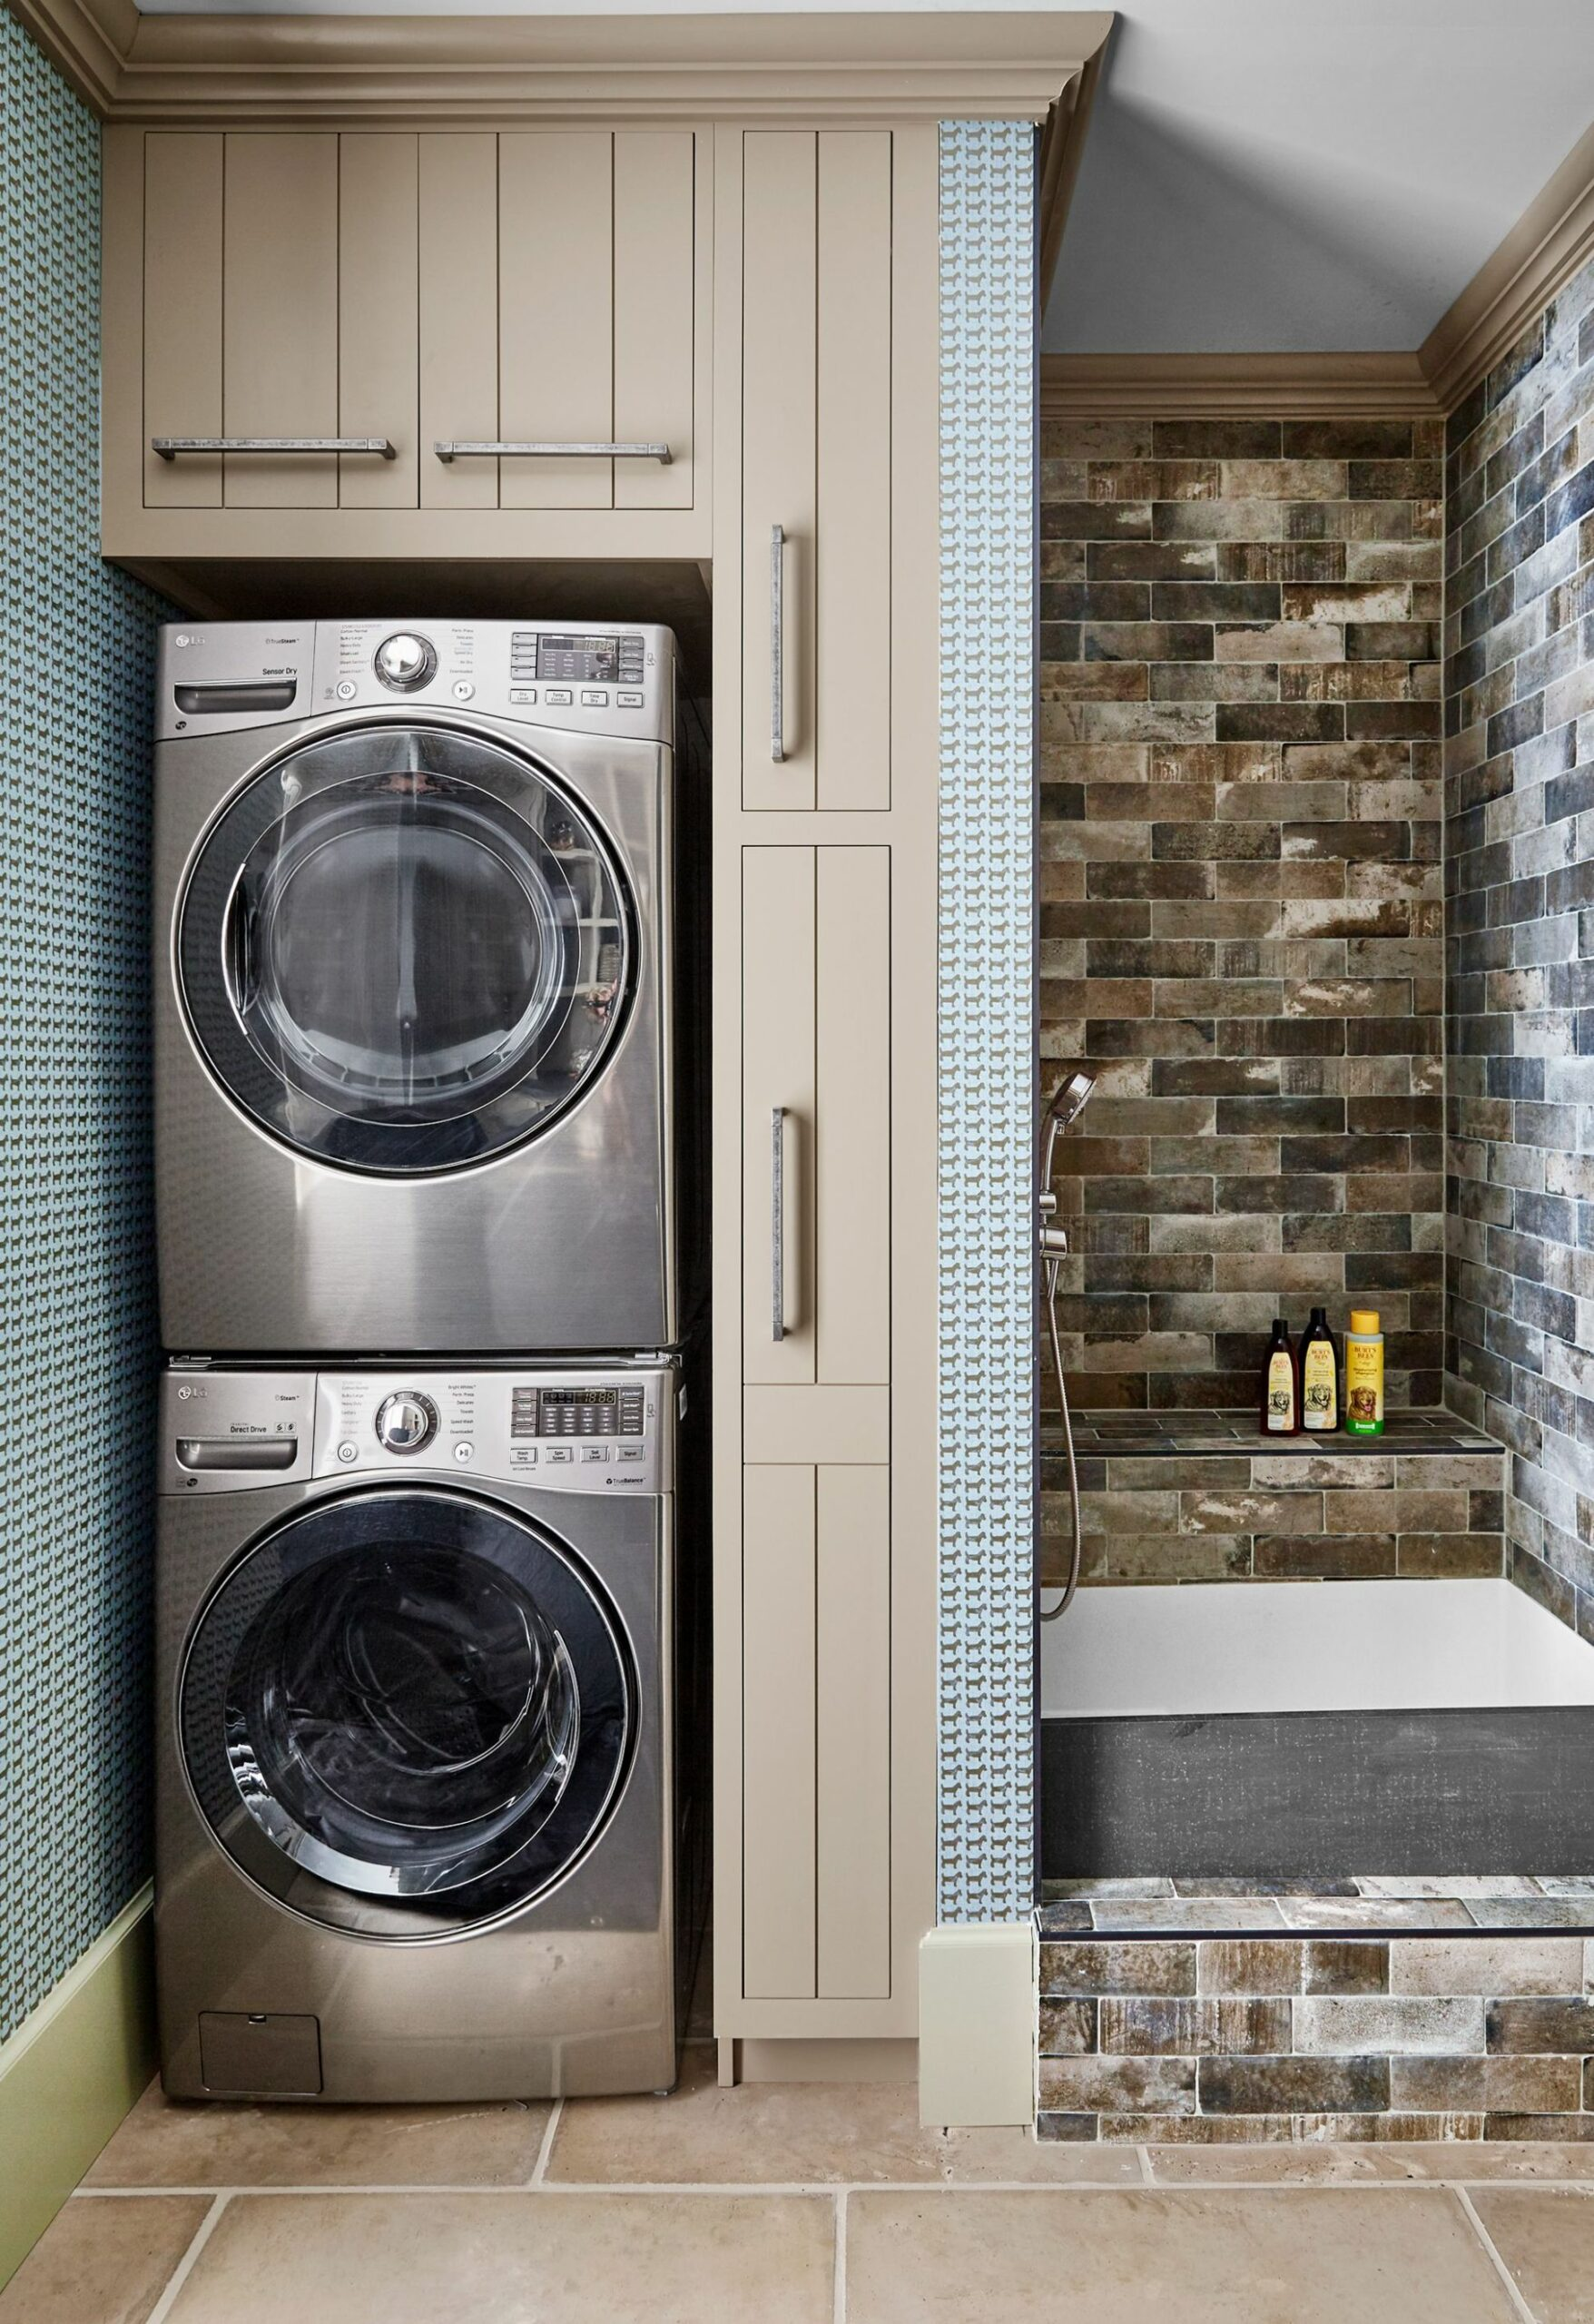 9 Small Laundry Room Ideas - Small Laundry Room Storage Tips - laundry room update ideas